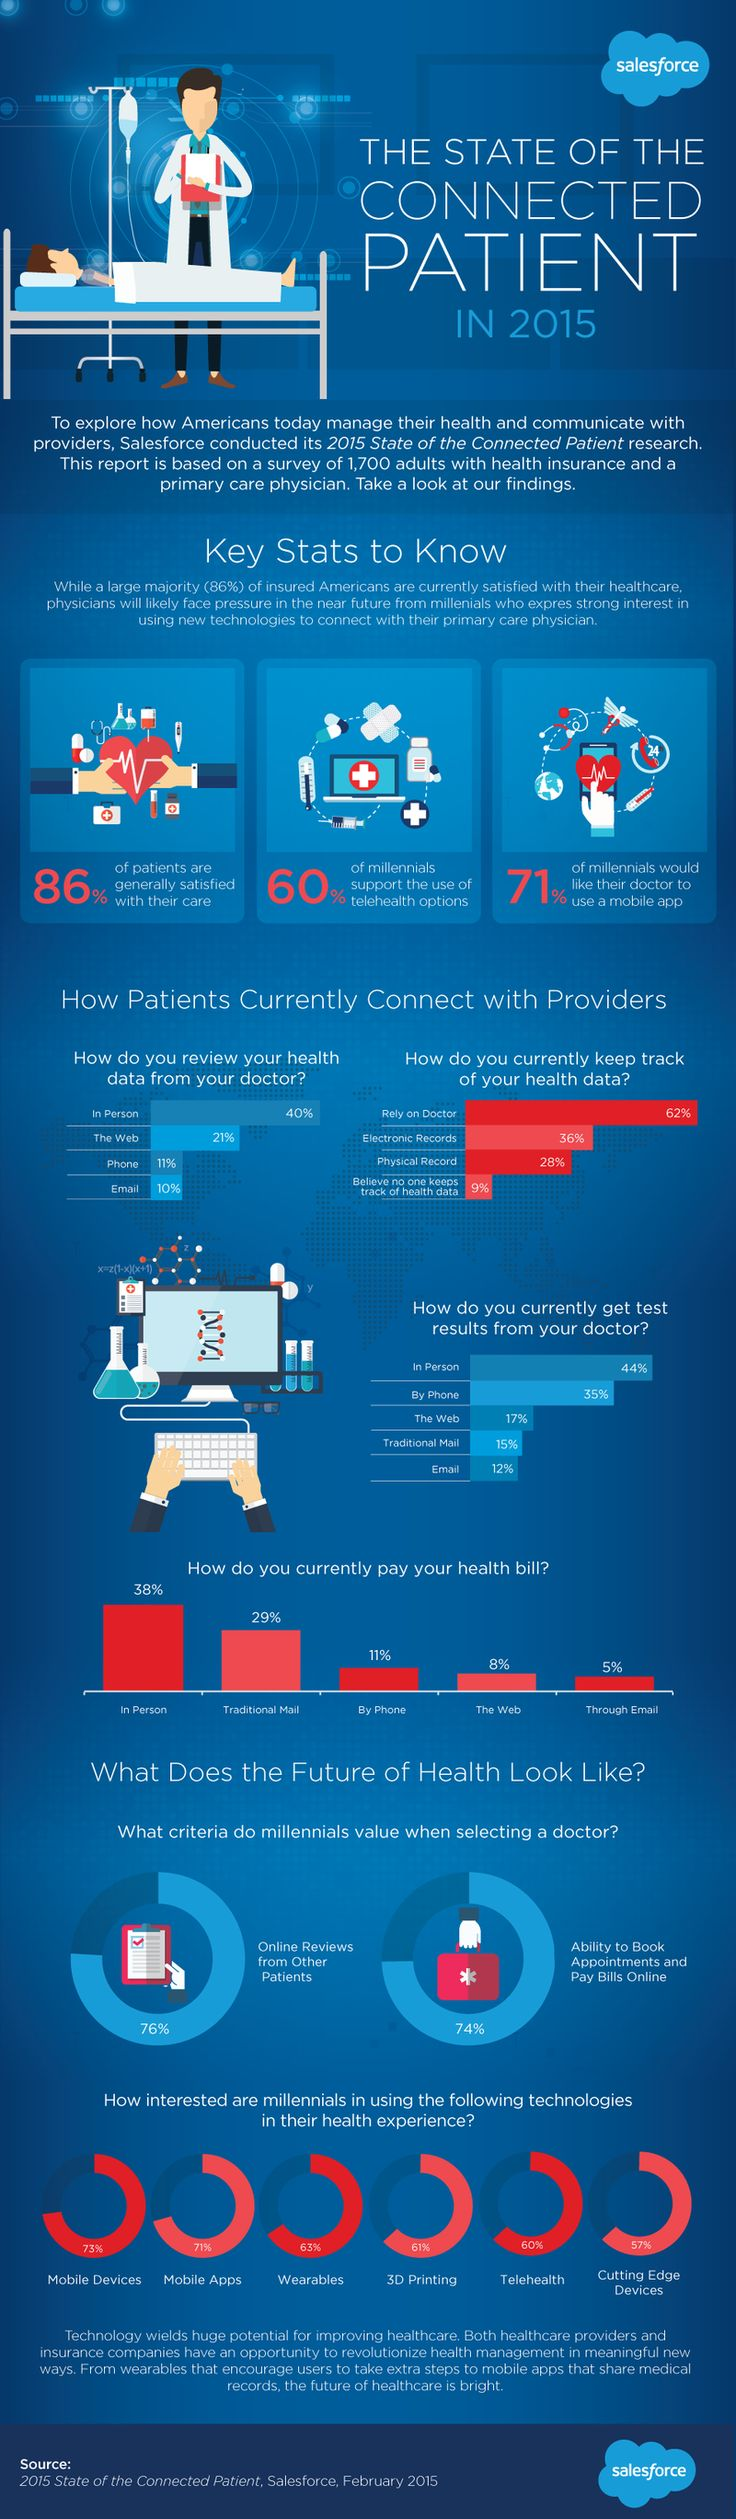 The State of the Connected Patient in 2015 - Infographic - Salesforce - february 2015